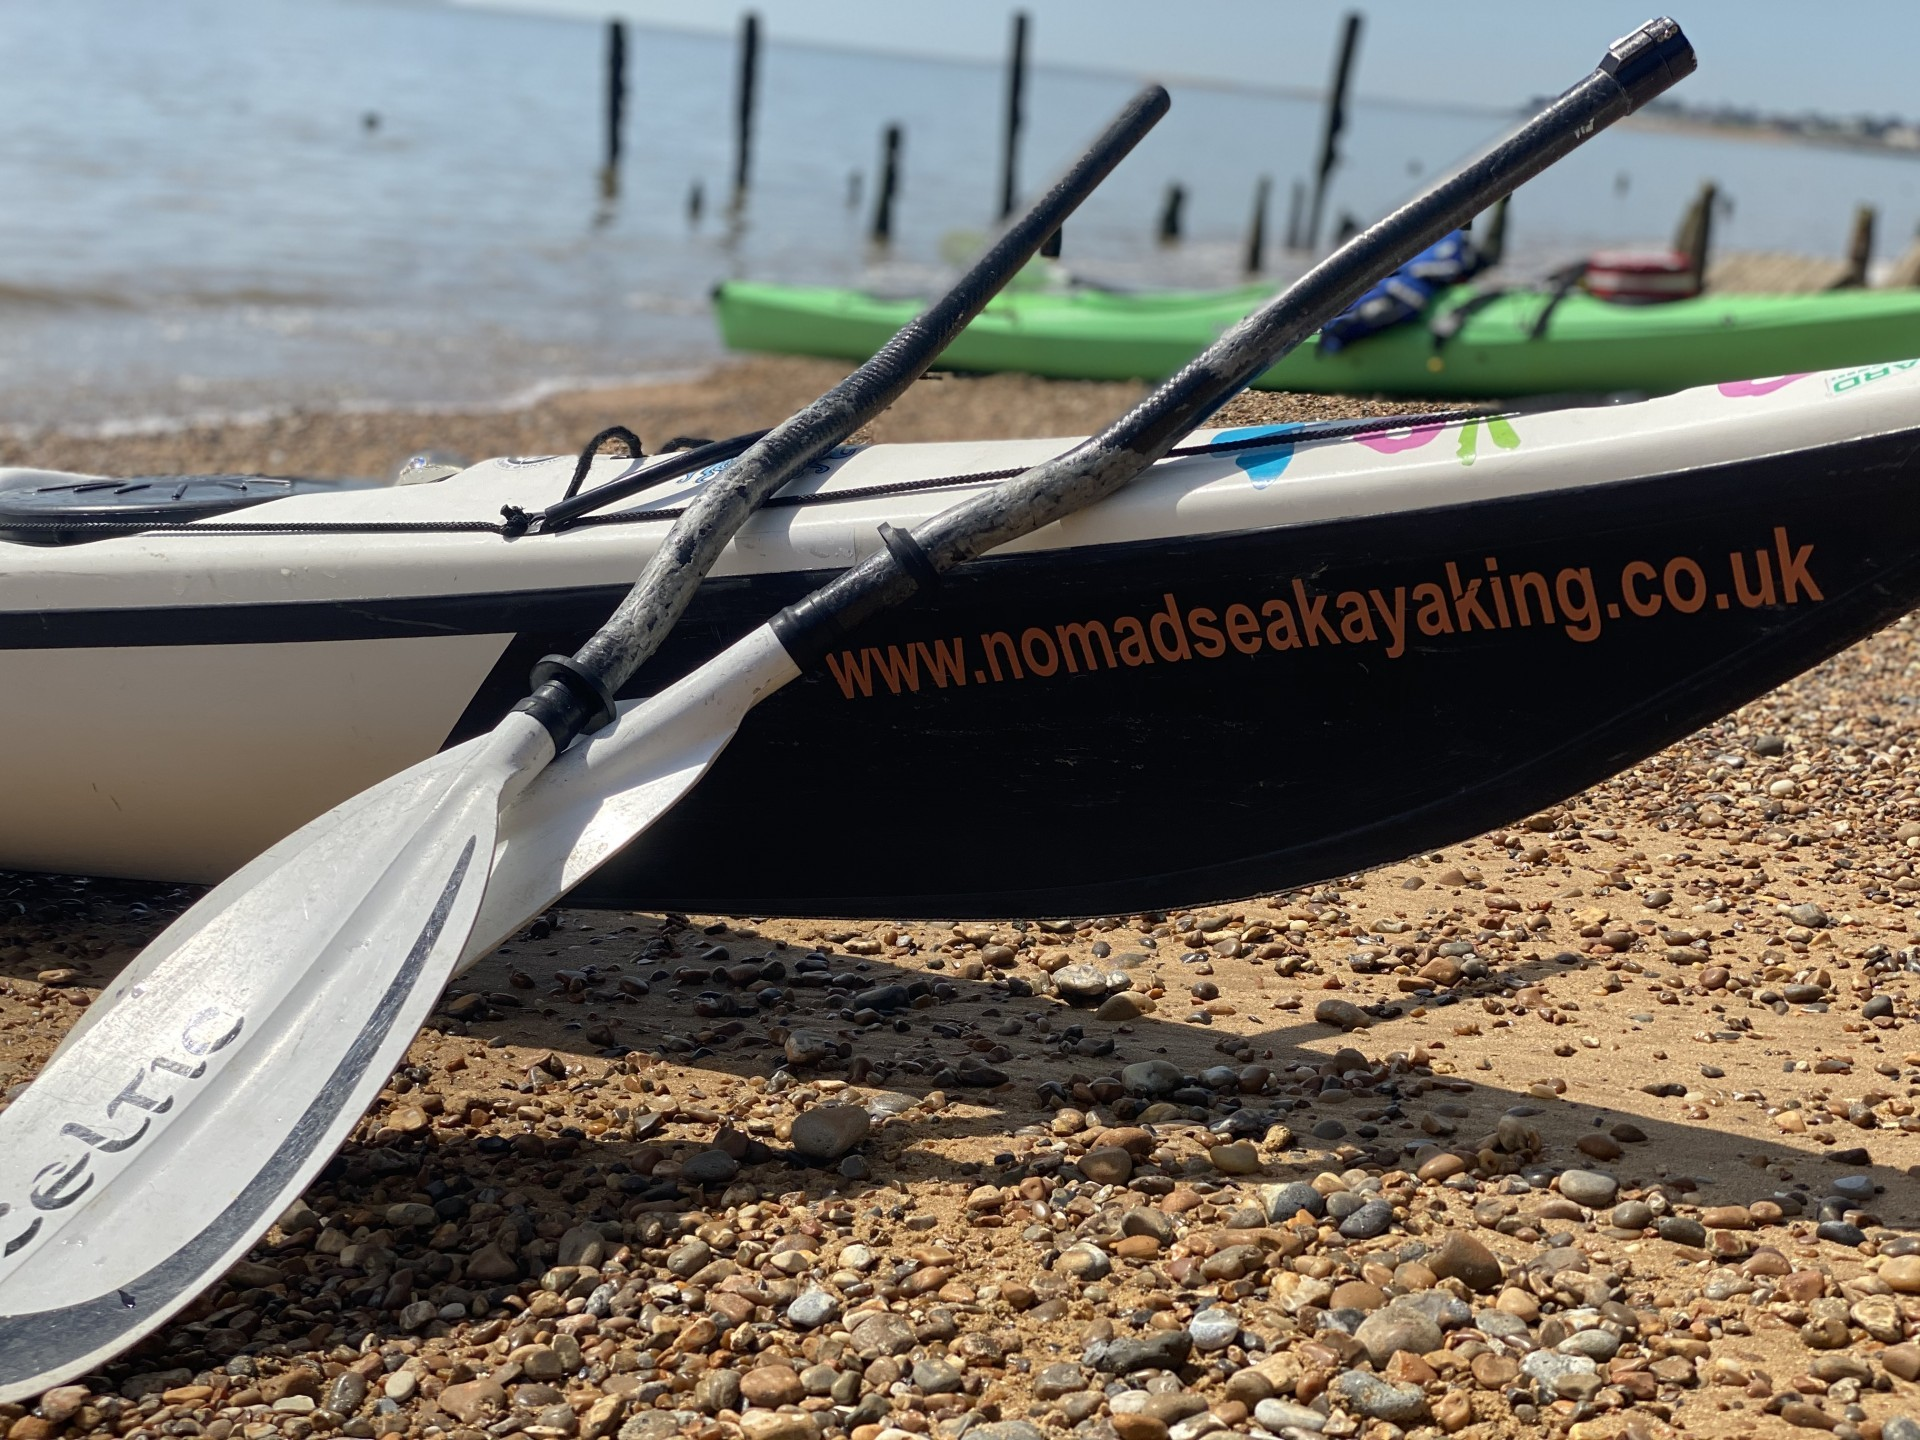 A white Celtic paddle split in two & resting on a sea kayak with another sea kayak in the background